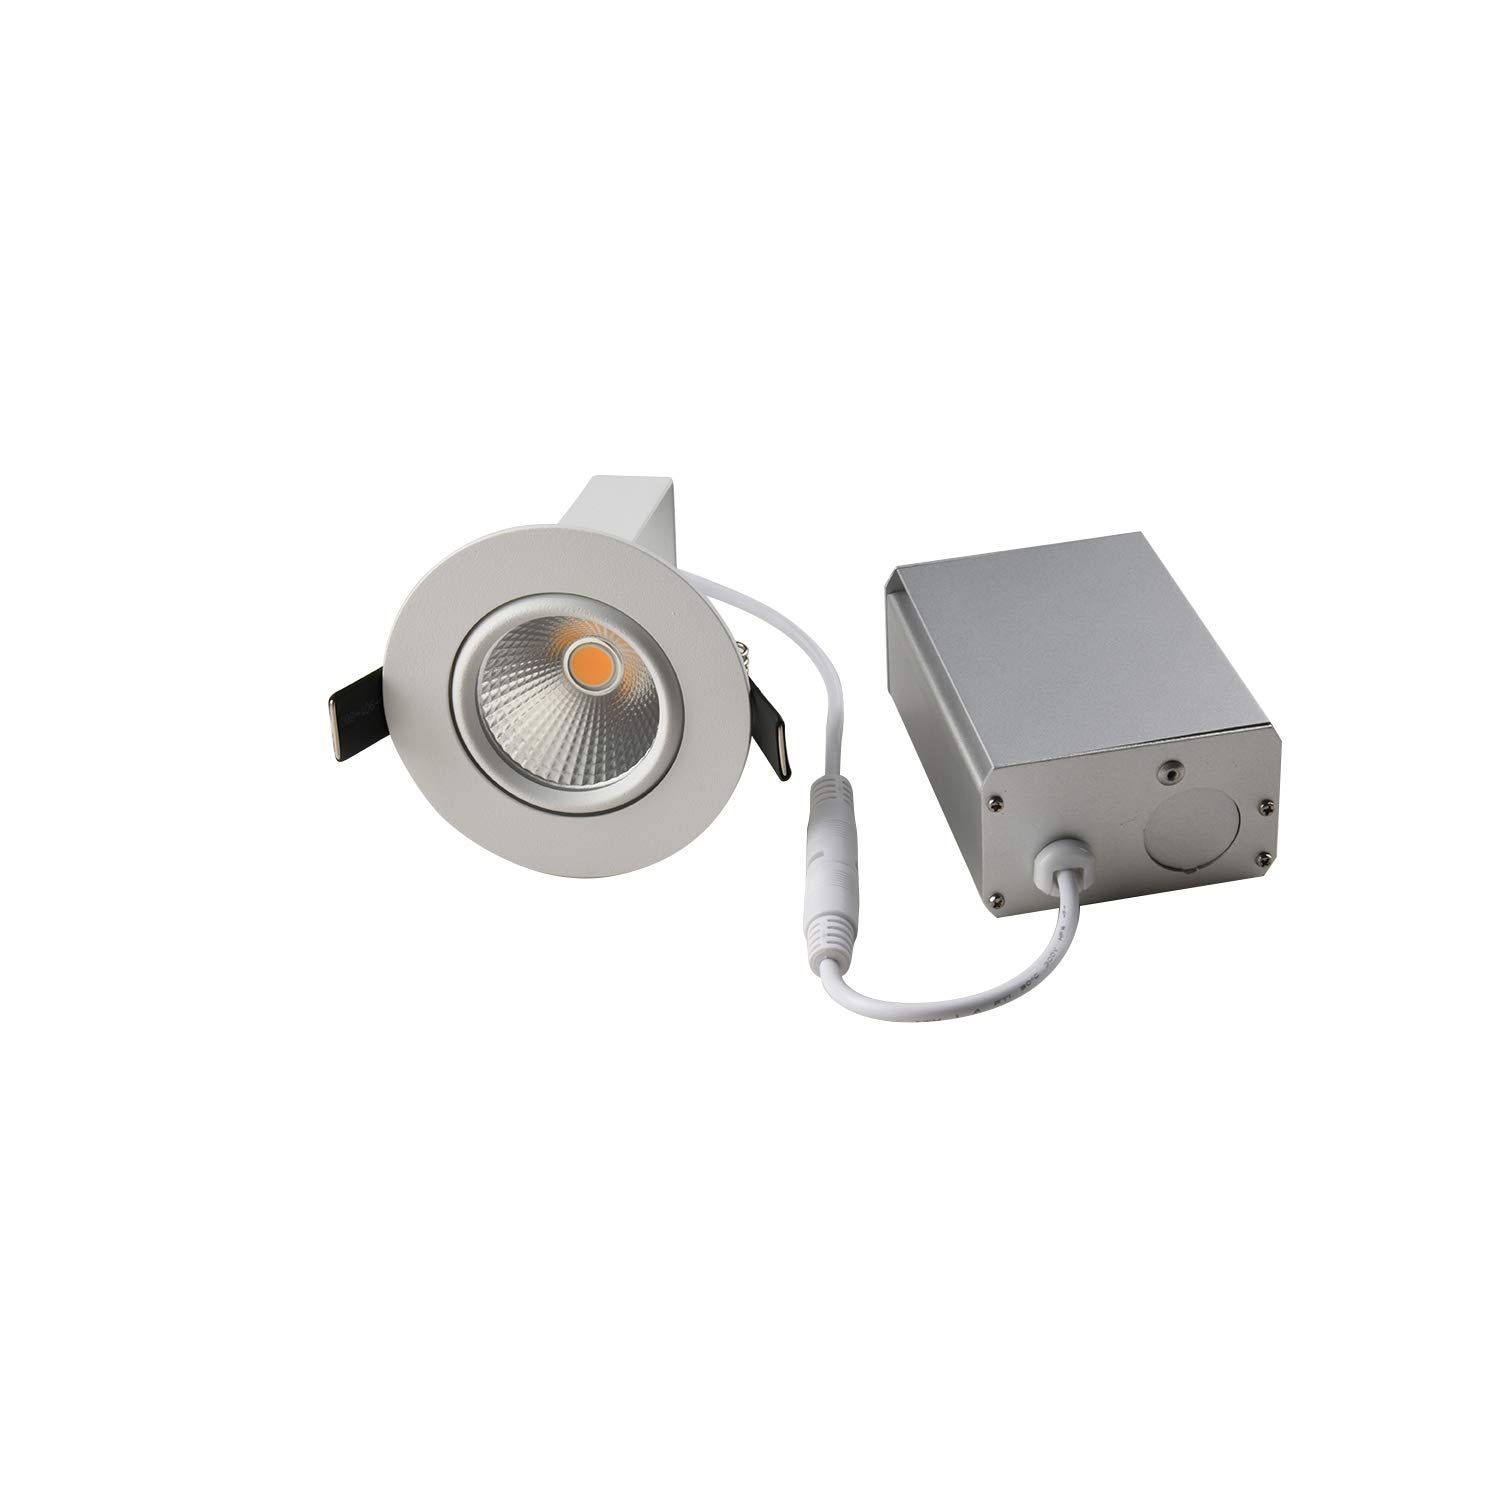 OBSESS Dimmable Recessed Ceiling Light with Junction Box, Air Tight IC Rated 8W COB LED Recessed Downlight Spotlight, White 3000K Aluminum